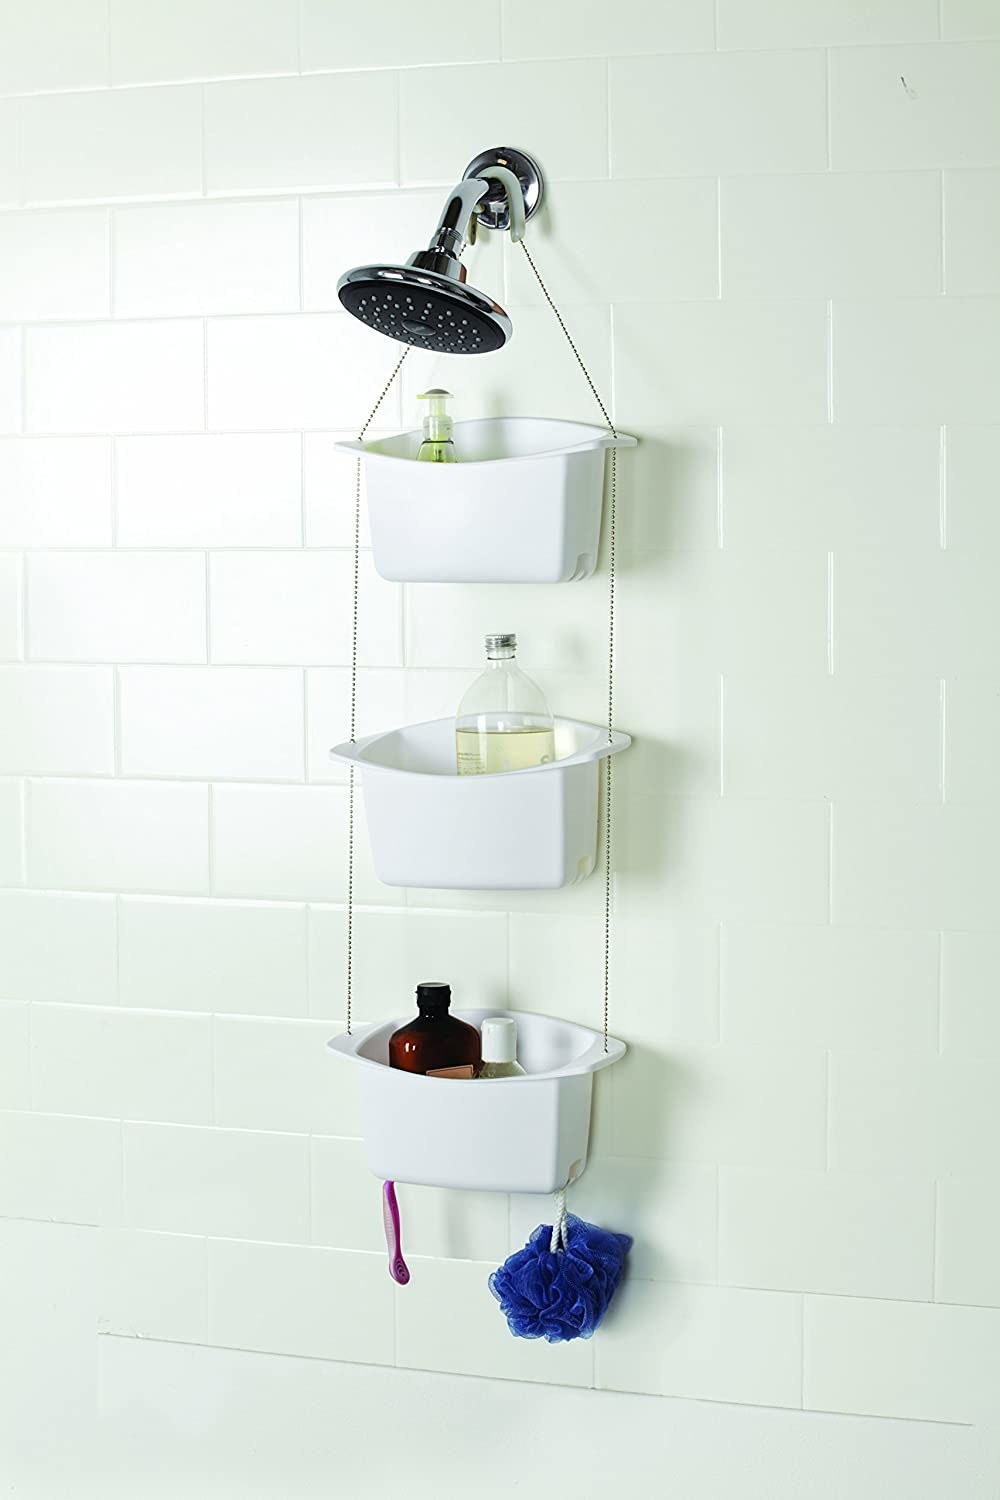 A white three-tier organiser attached to a shower with shower products in it